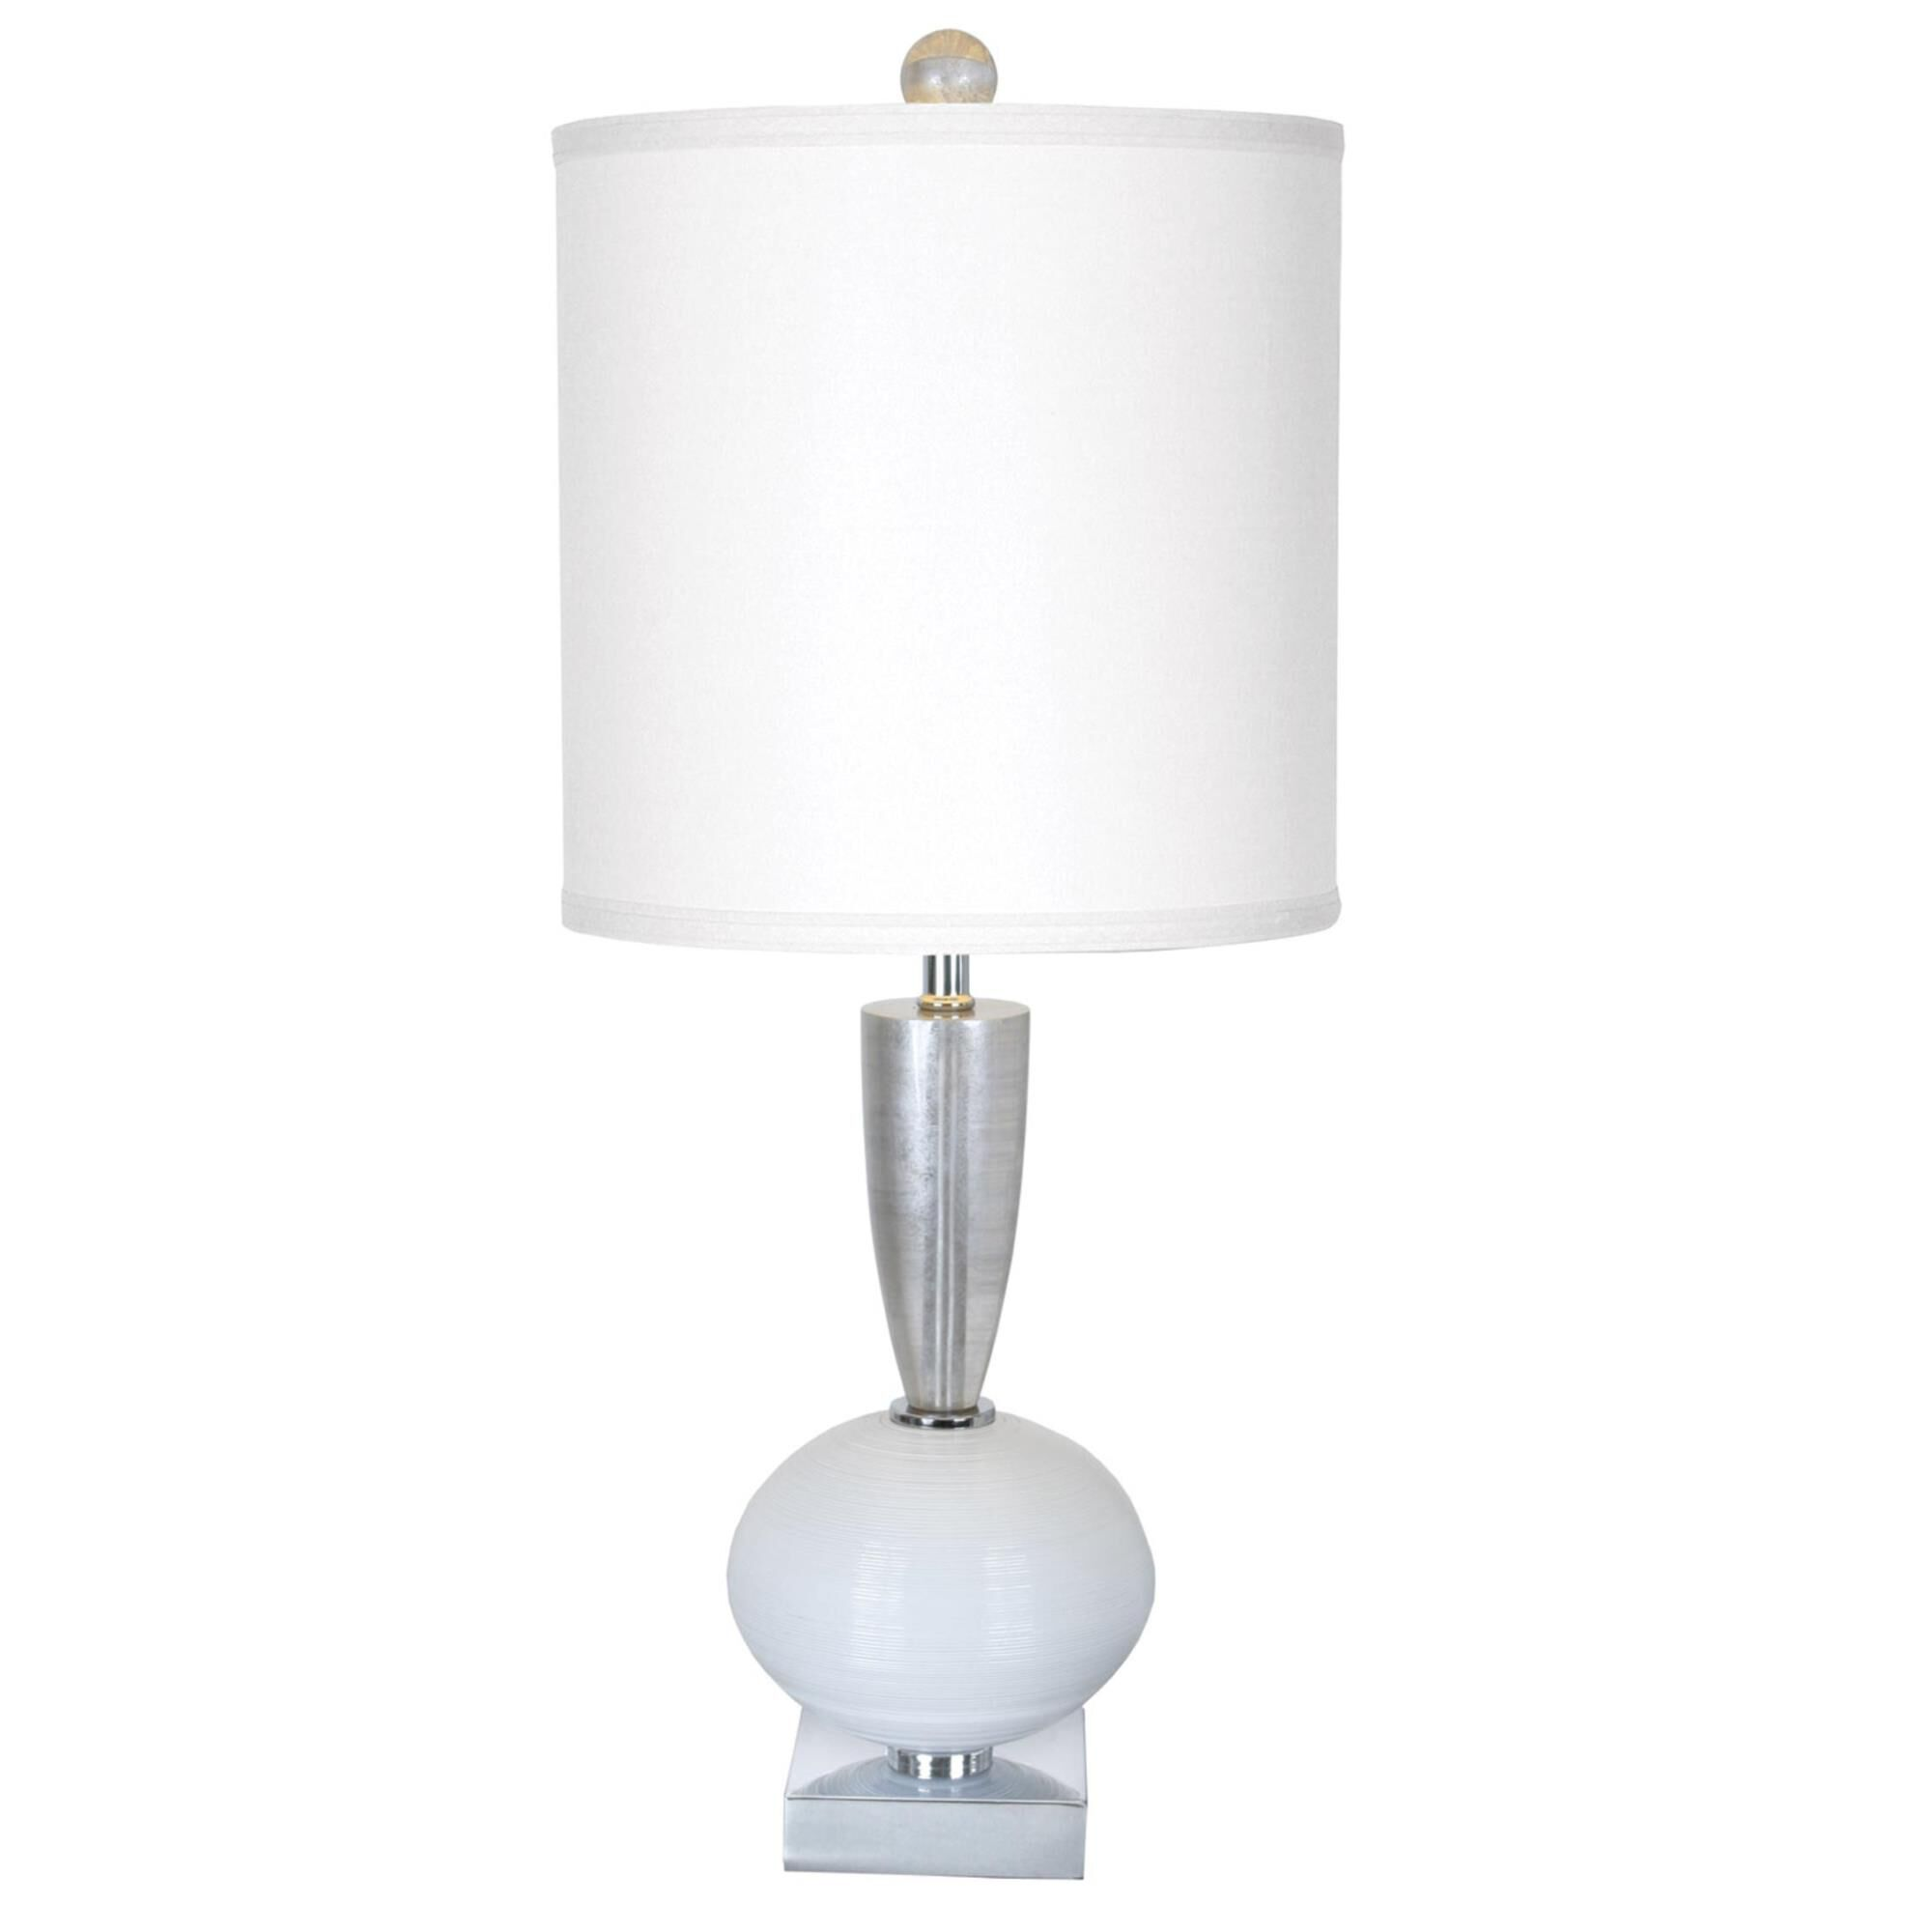 Van Teal Ring O Table Lamp Ring O - 130872 - Whimsical Table Lamp